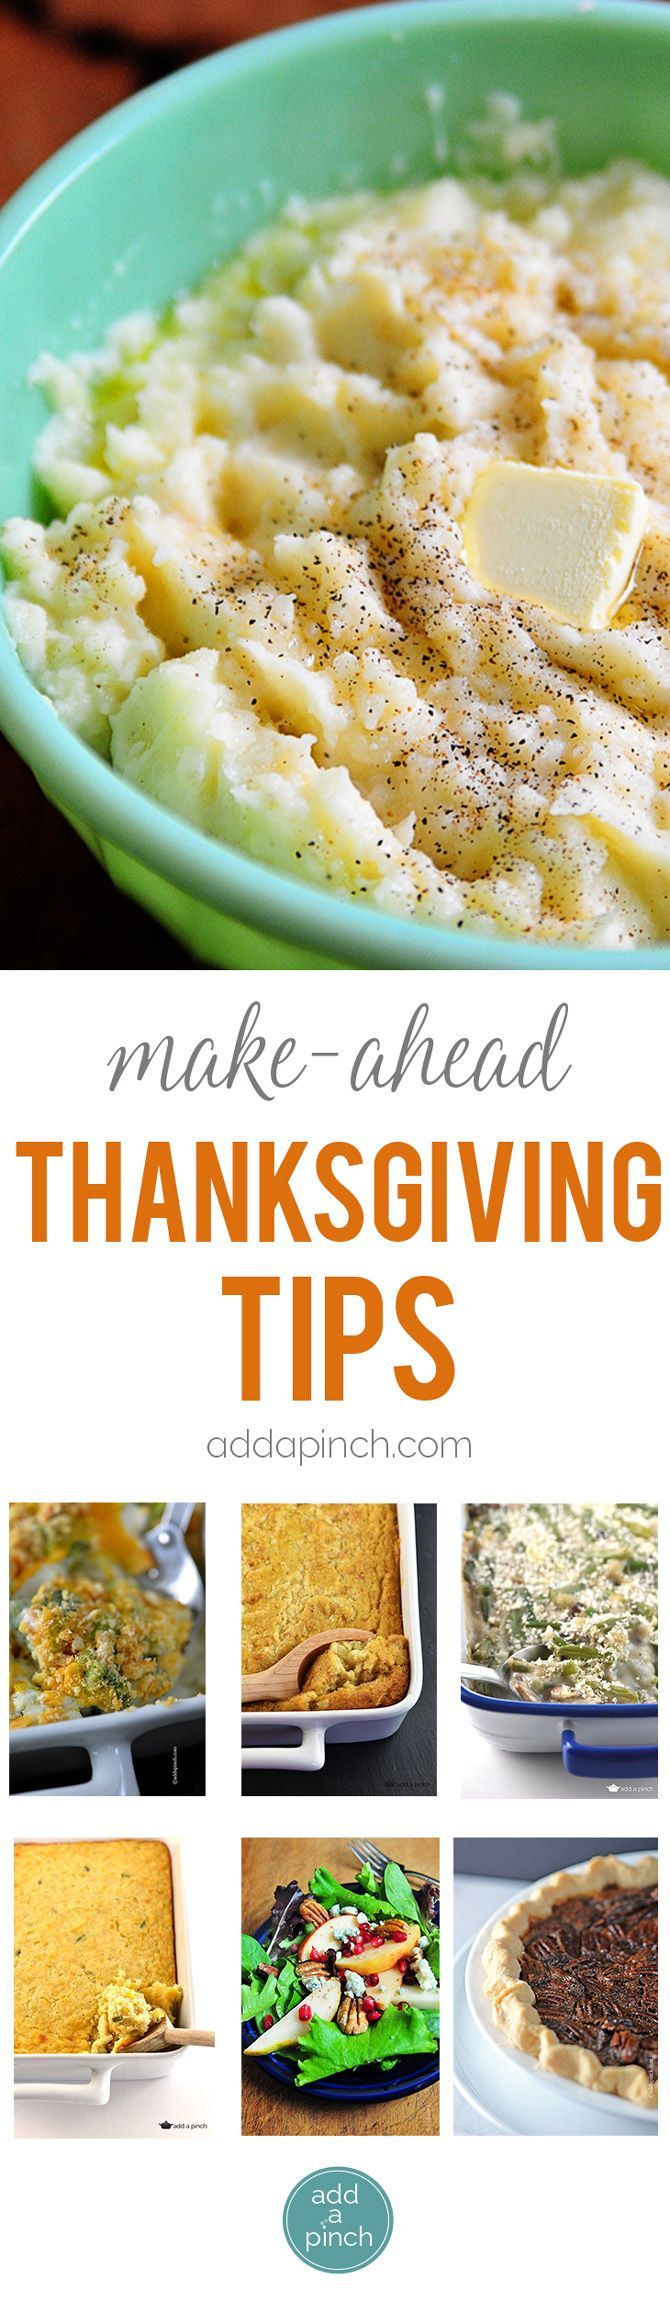 Make ahead Thanksgiving tips so you can plan a beautiful Thanksgiving meal that allows you to truly enjoy the day! // addapinch.com #thanksgiving #makeaheadrecipes #thanksgivingrecipes